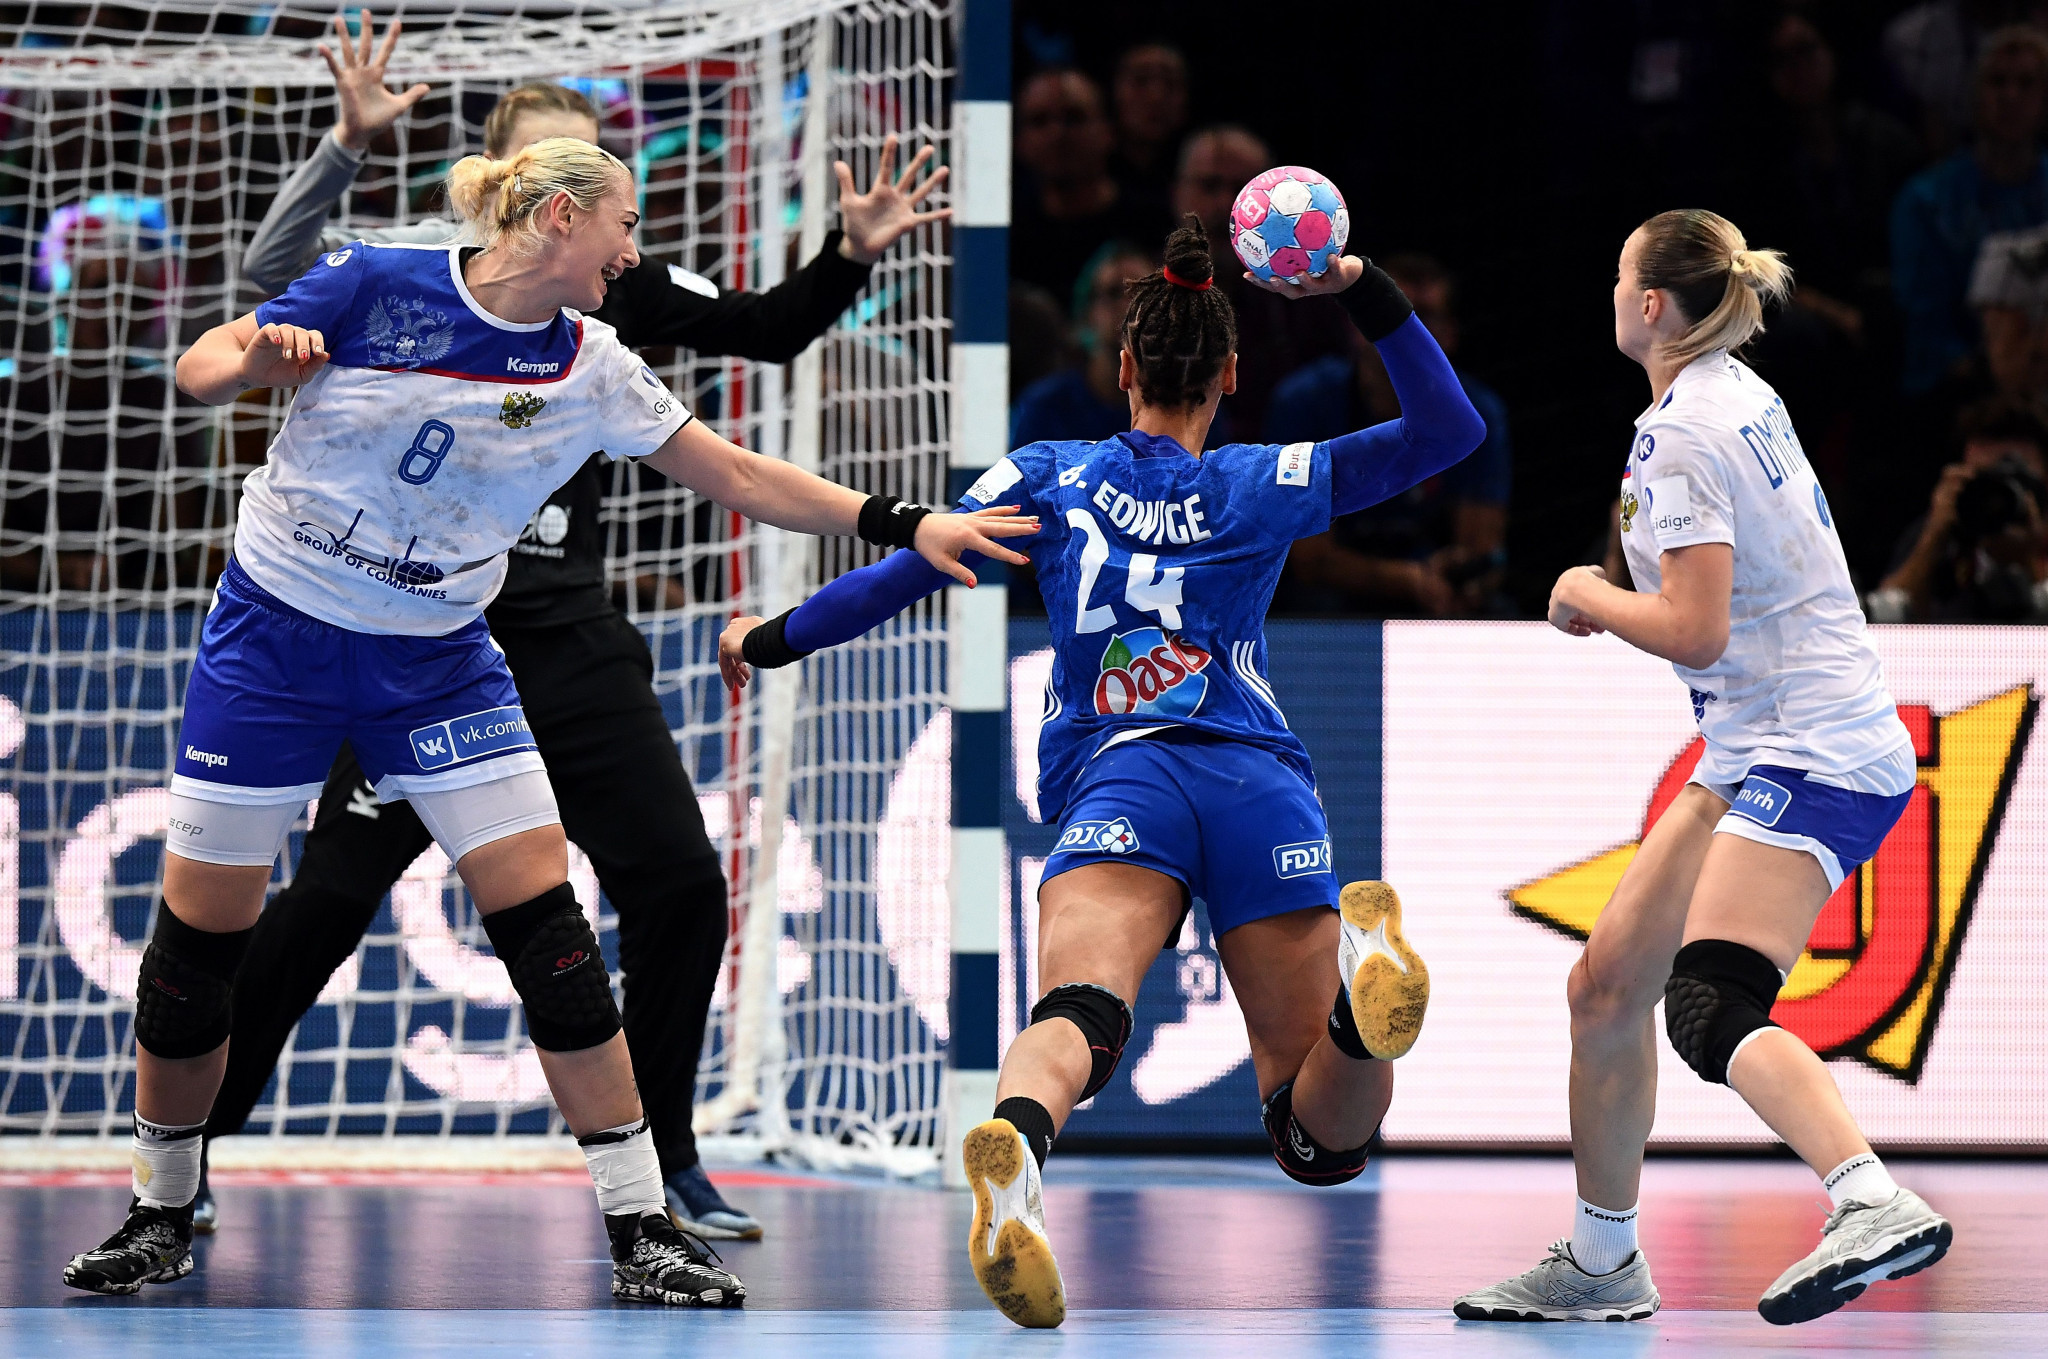 France beat Russia in the final of the 2018 European Women's Handball Championship ©Getty Images